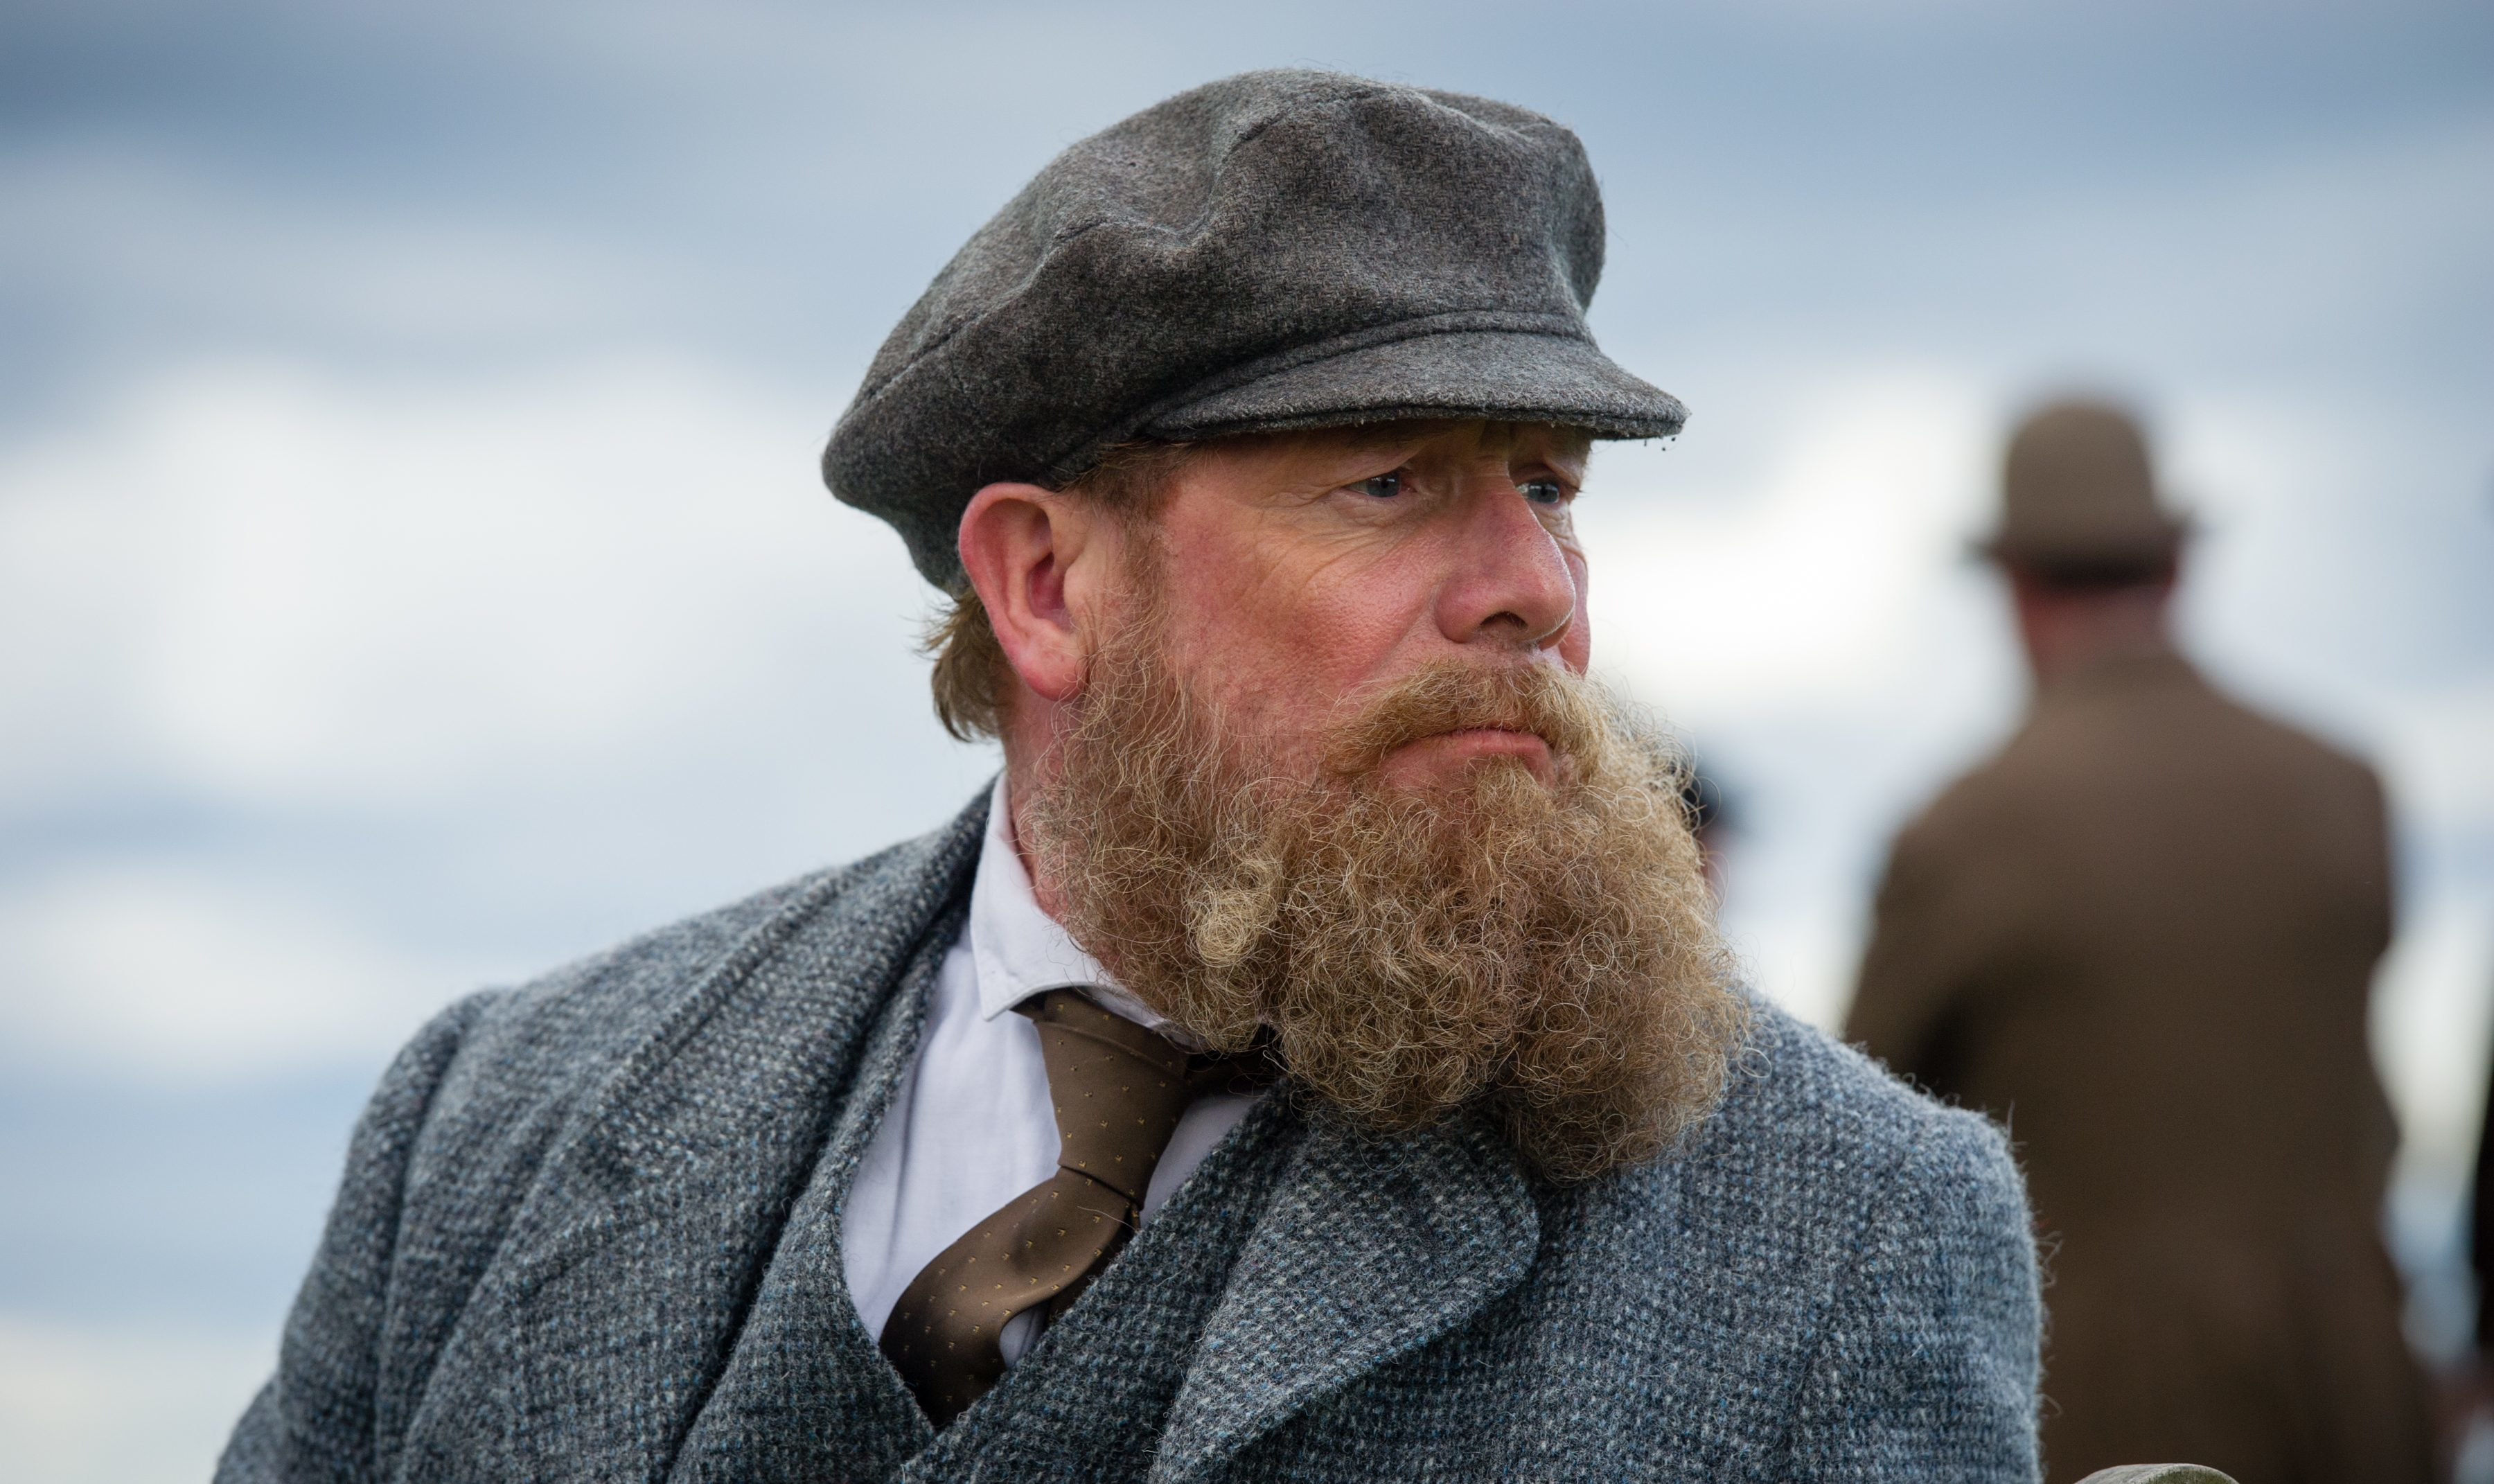 Peter Mullan is one of the stars of the movie.